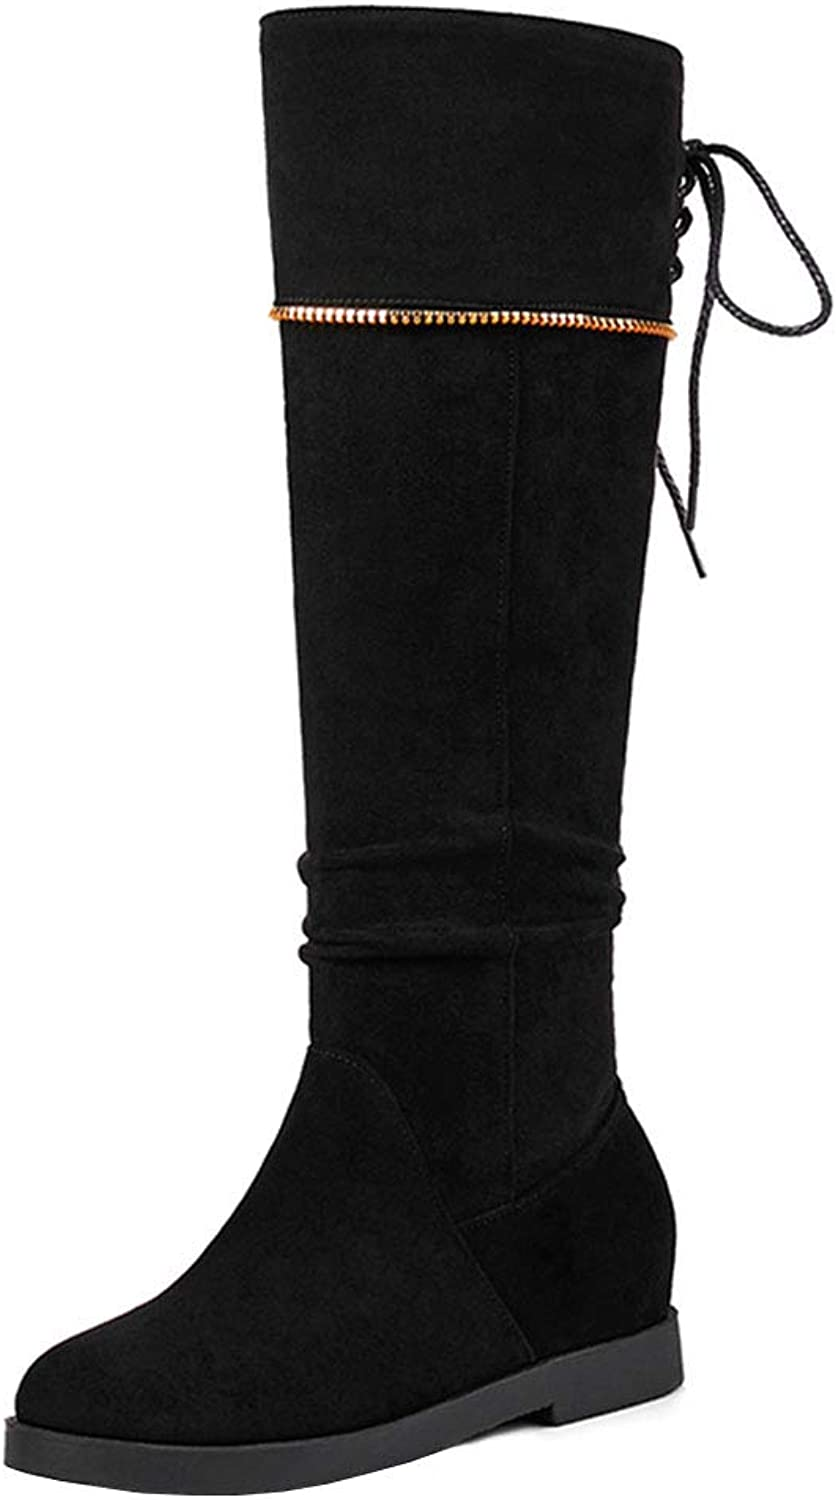 FizaiZifai Women Pull On Knee High Boots Wedge Heel